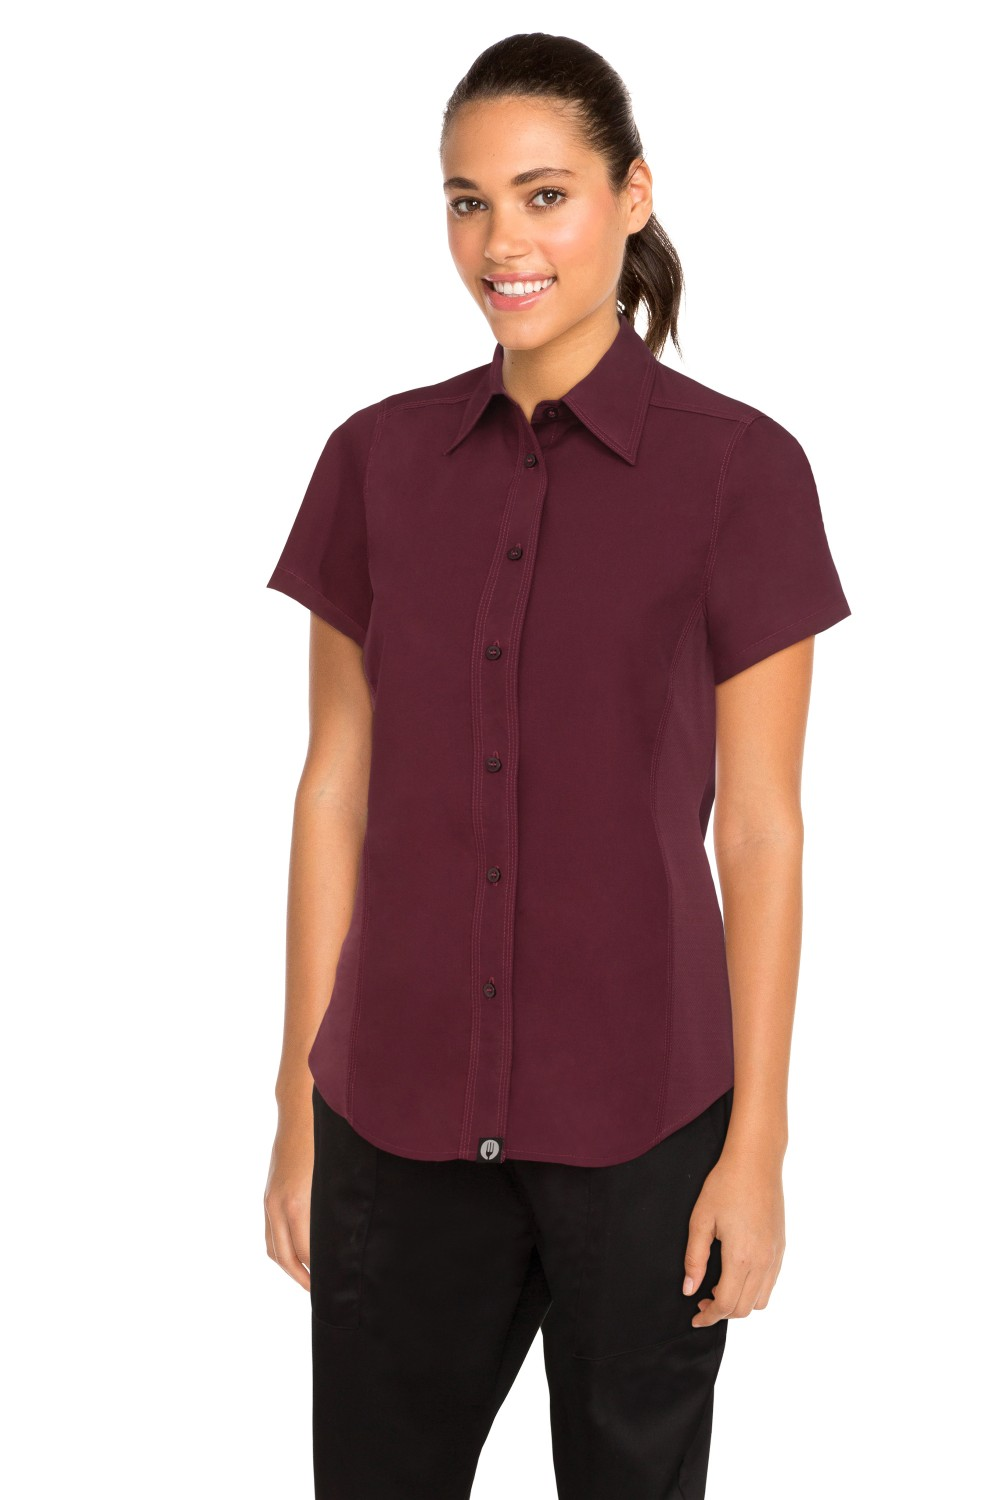 Chef Works CSWV-MER Universal Cool Vent Womens Merlot Shirt